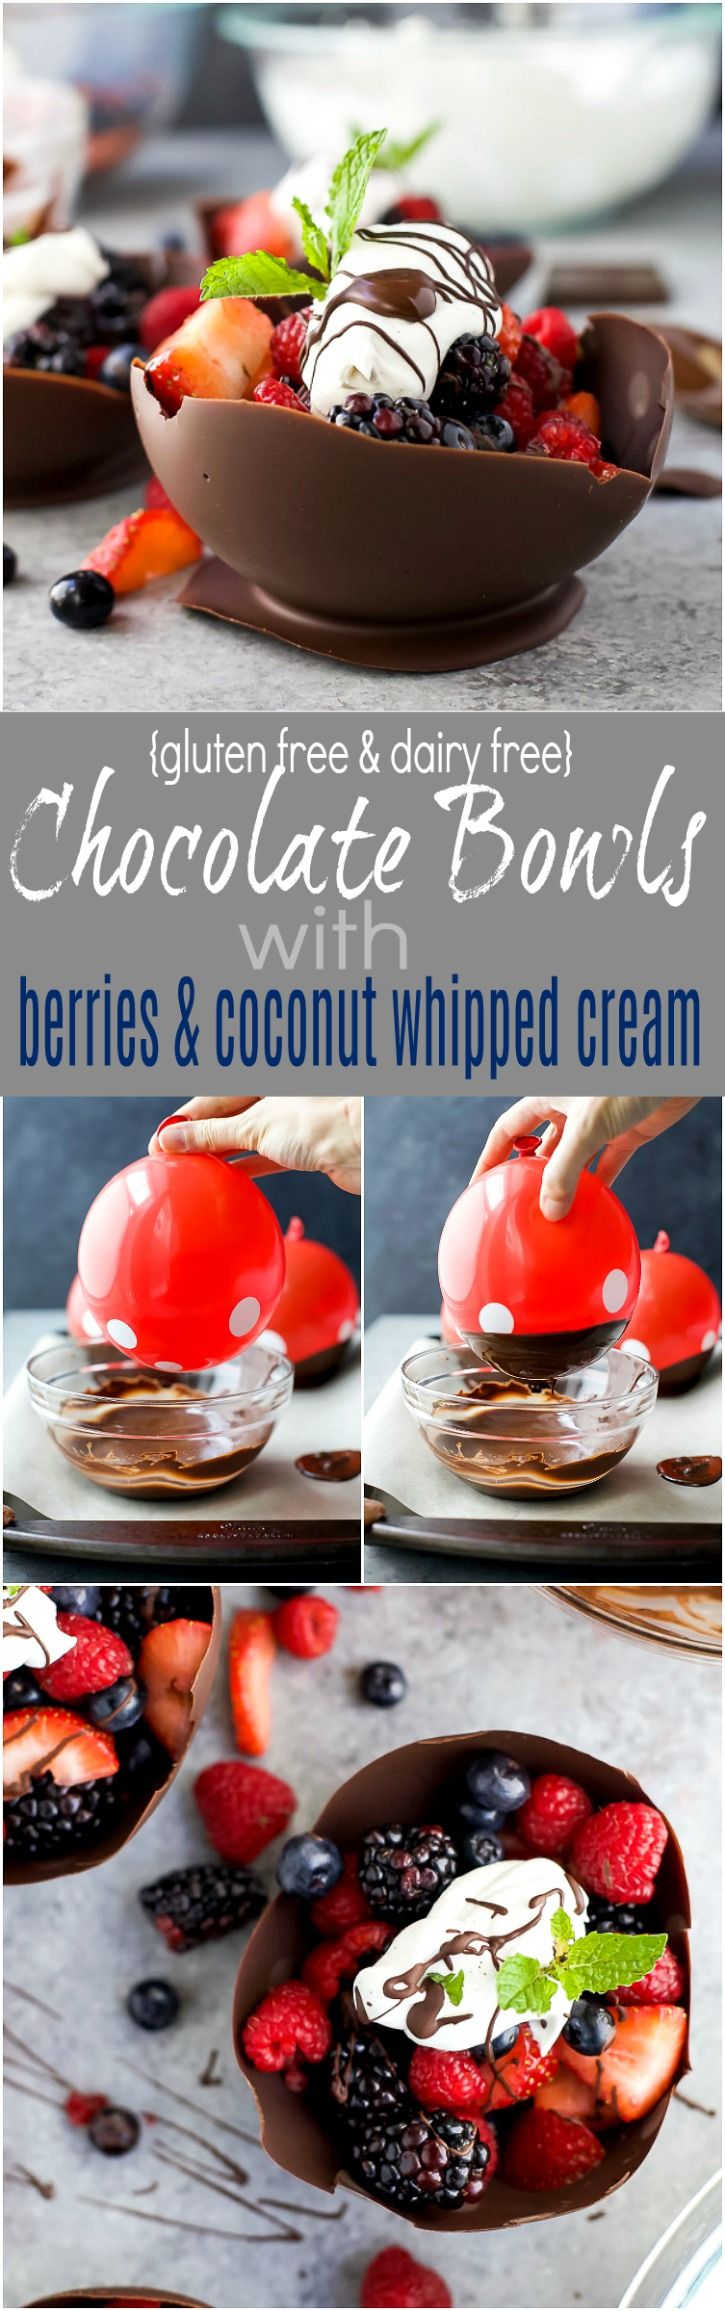 DIY Chocolate Bowls made with balloons that are filled with fresh berries and topped with a dairy free Coconut Whipped Cream. These Chocolate Bowls are the perfect light and refreshing Valentines Day dessert.